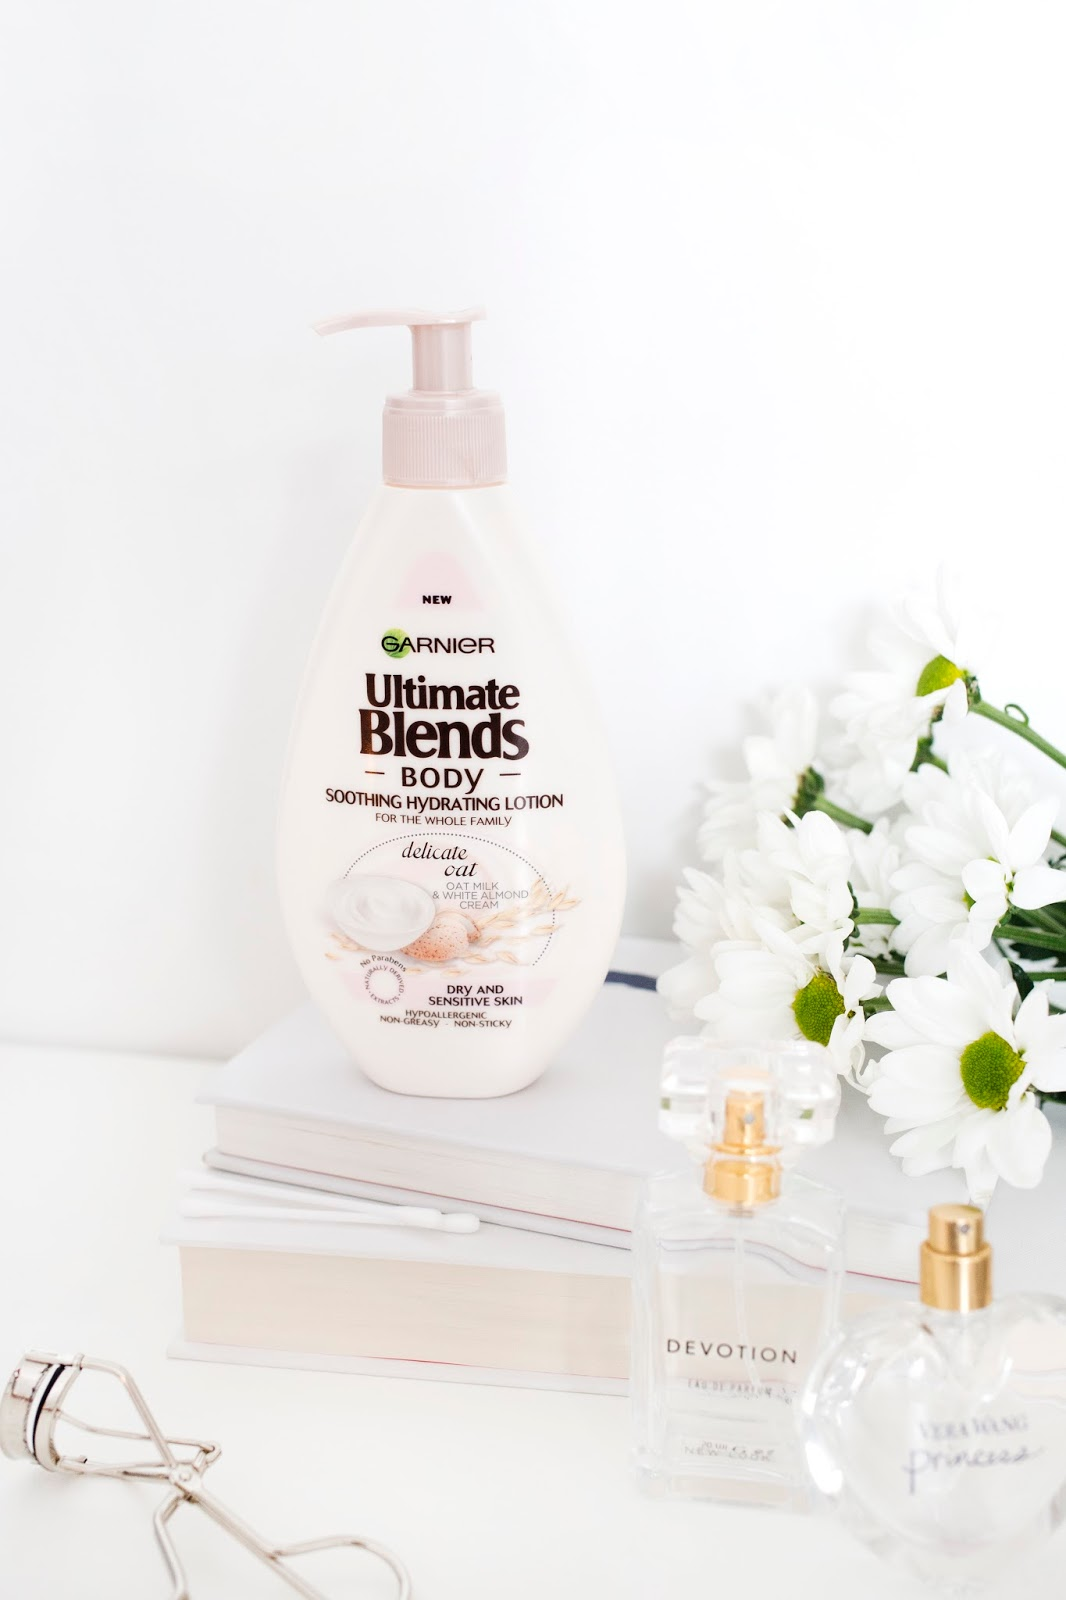 Garnier Ultimate Blends – Soothing Hydrating Body Lotion